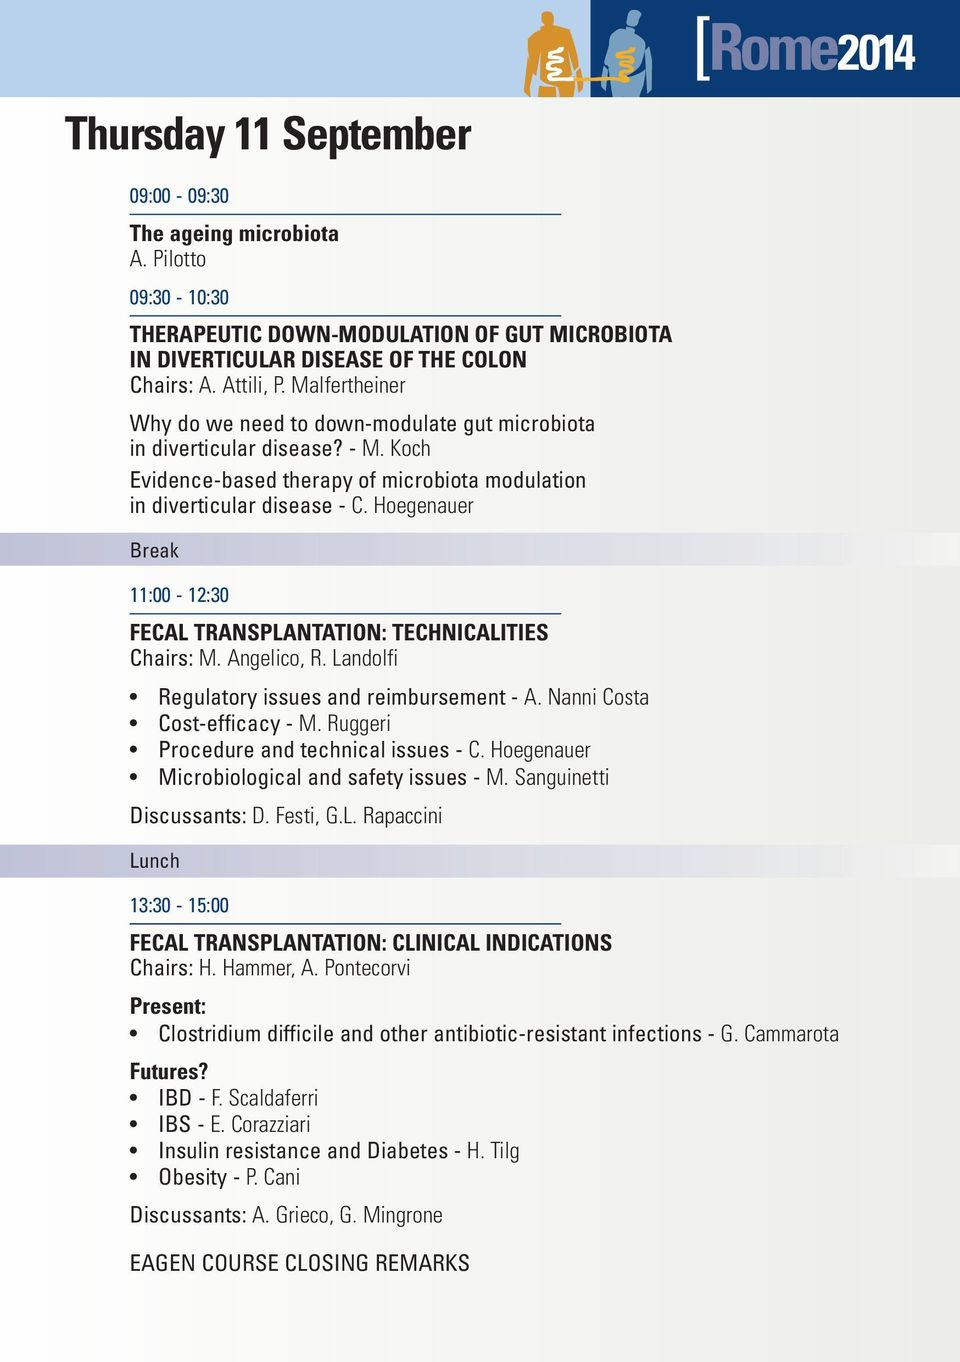 Hoegenauer Break 11:00-12:30 FECAL TRANSPLANTATION: TECHNICALITIES Chairs: M. Angelico, R. Landolfi Regulatory issues and reimbursement - A. Nanni Costa Cost-efficacy - M.